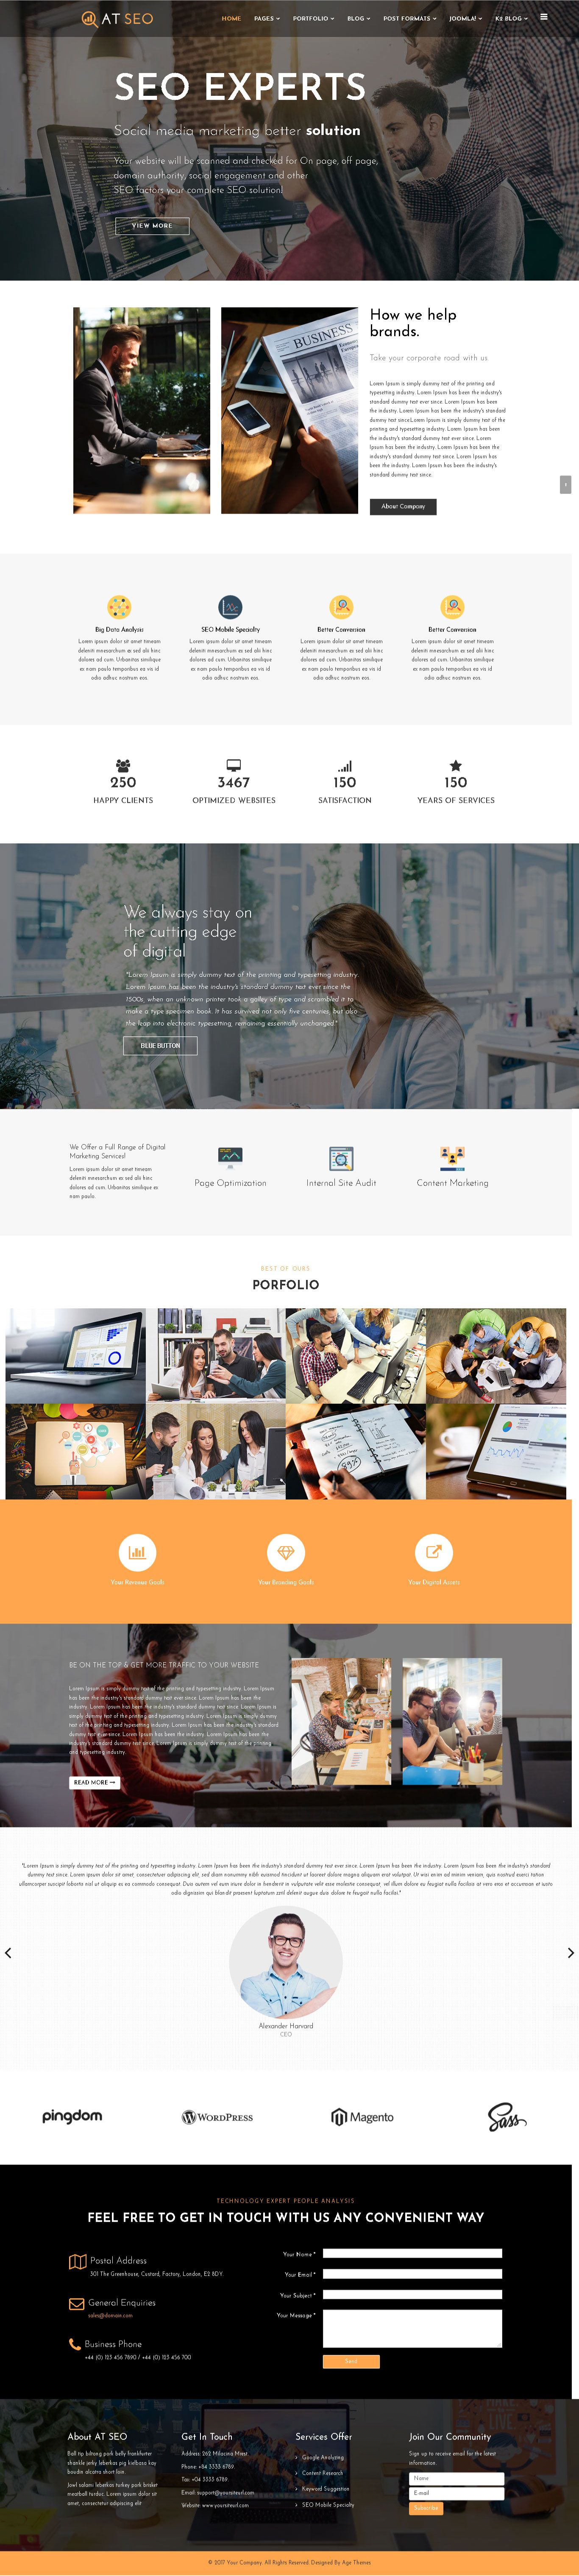 AT SEO – Responsive Marketing Joomla Template Screenshot 1